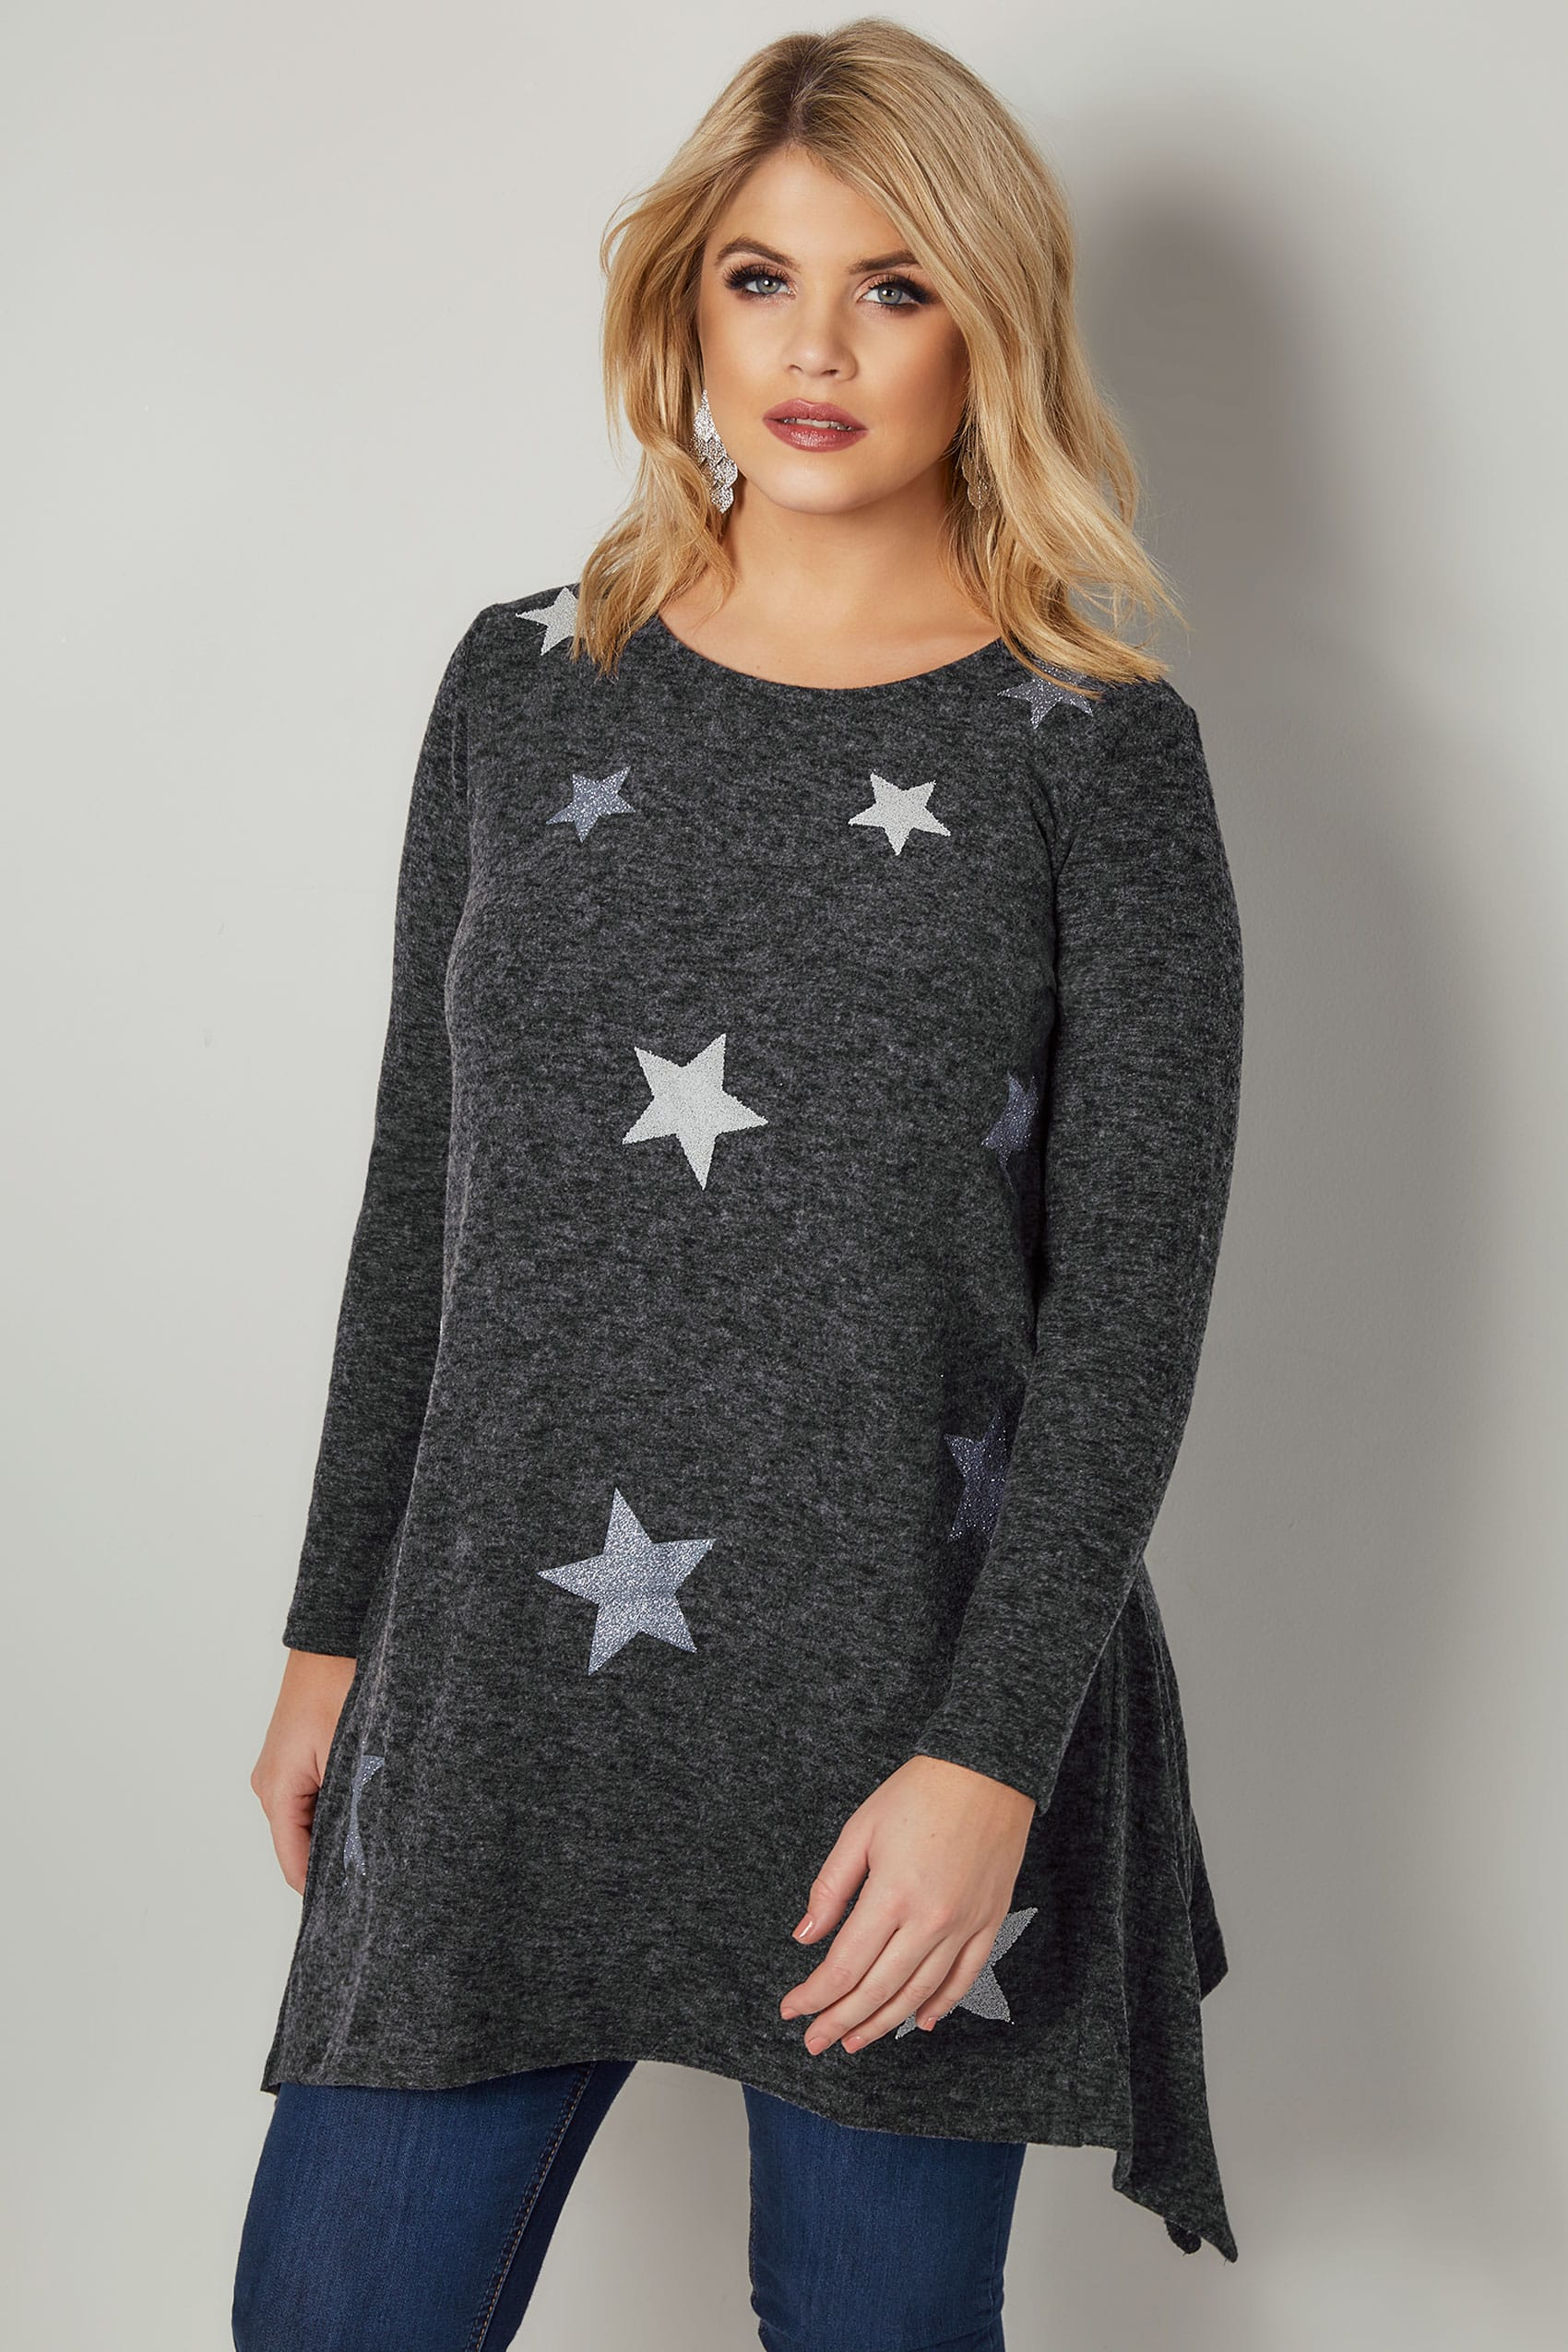 dark grey textured star print longline knitted top with hanky hem plus size 16 to 36. Black Bedroom Furniture Sets. Home Design Ideas